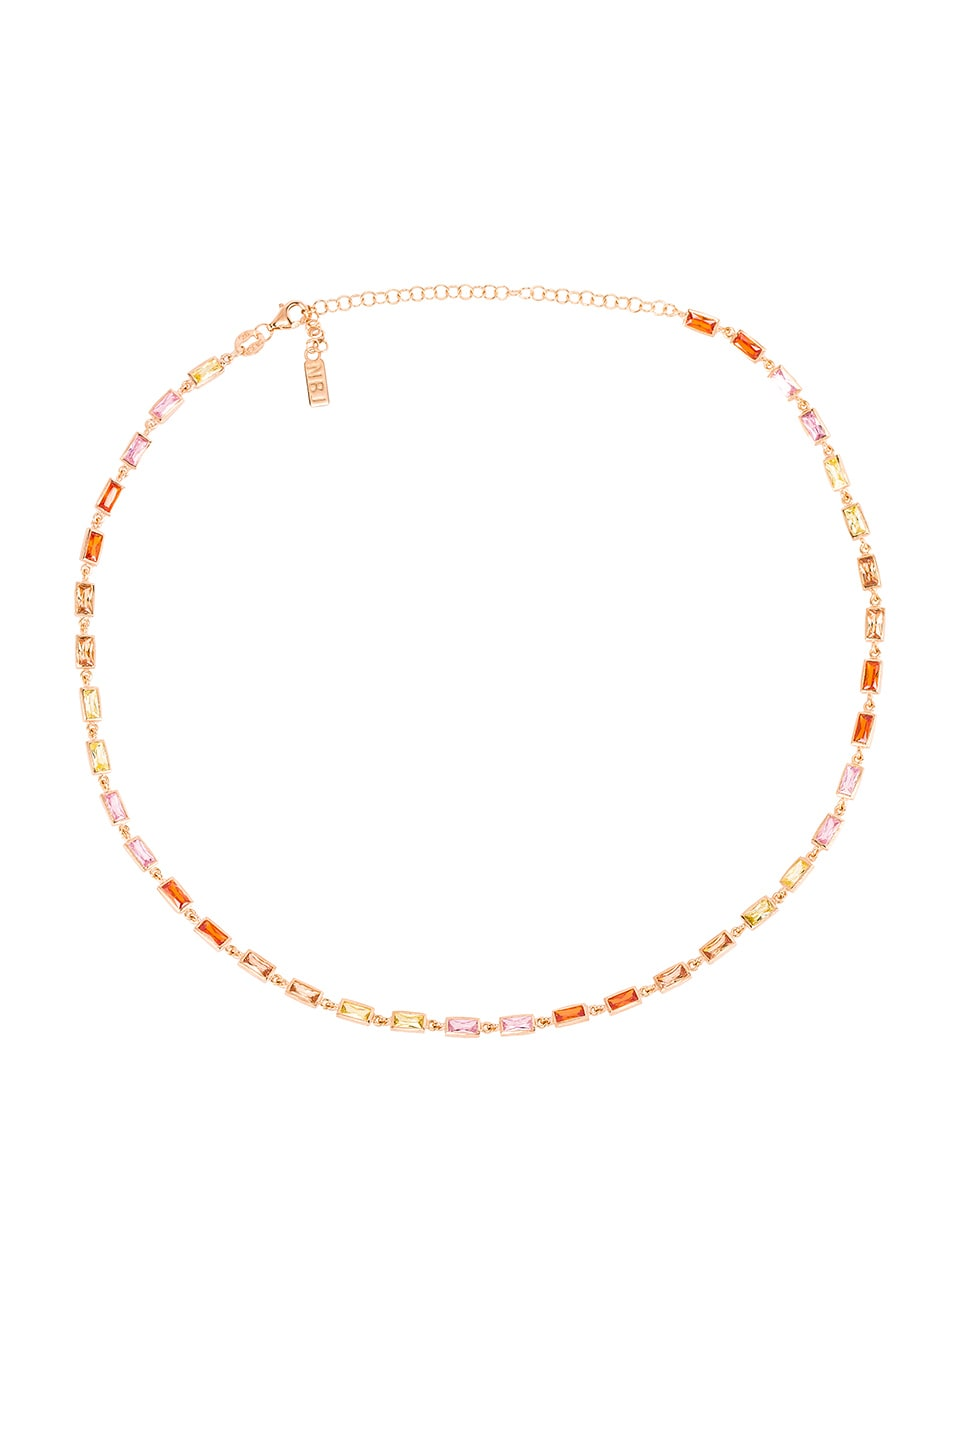 Natalie B Jewelry CZ Baguette Tennis Necklace in Gold